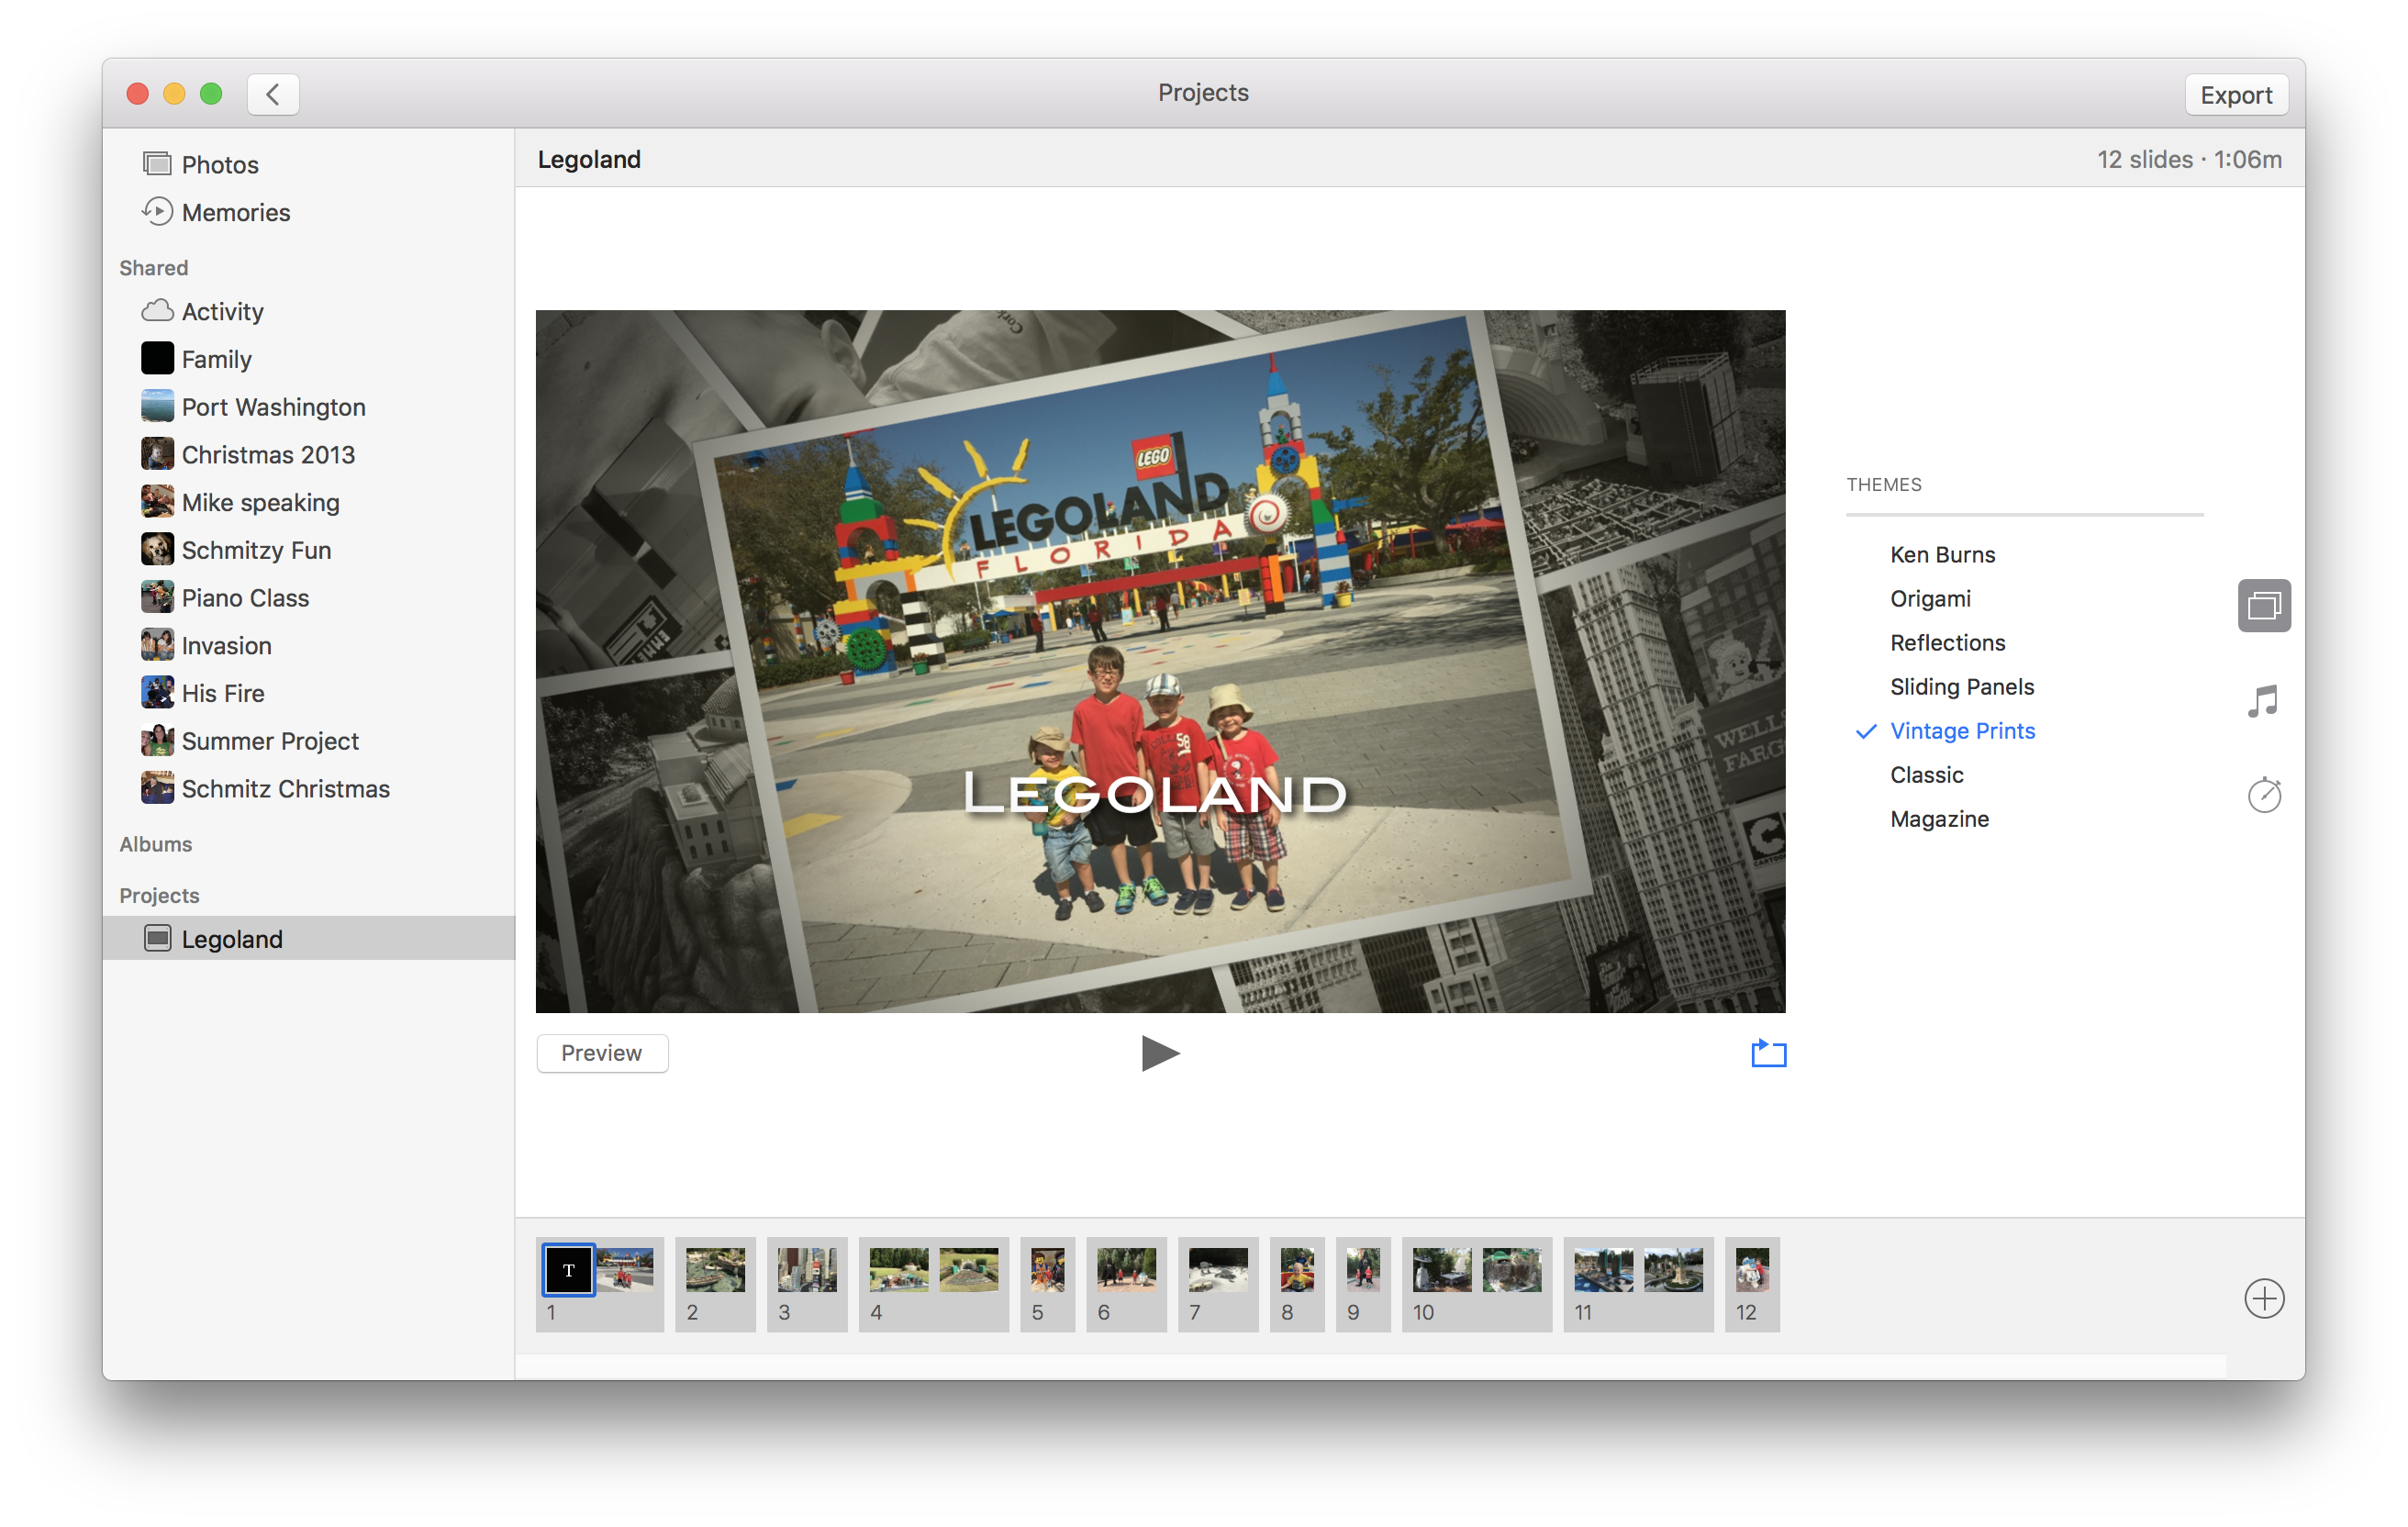 How to Create and Share Slideshows in the MacOS Photos App